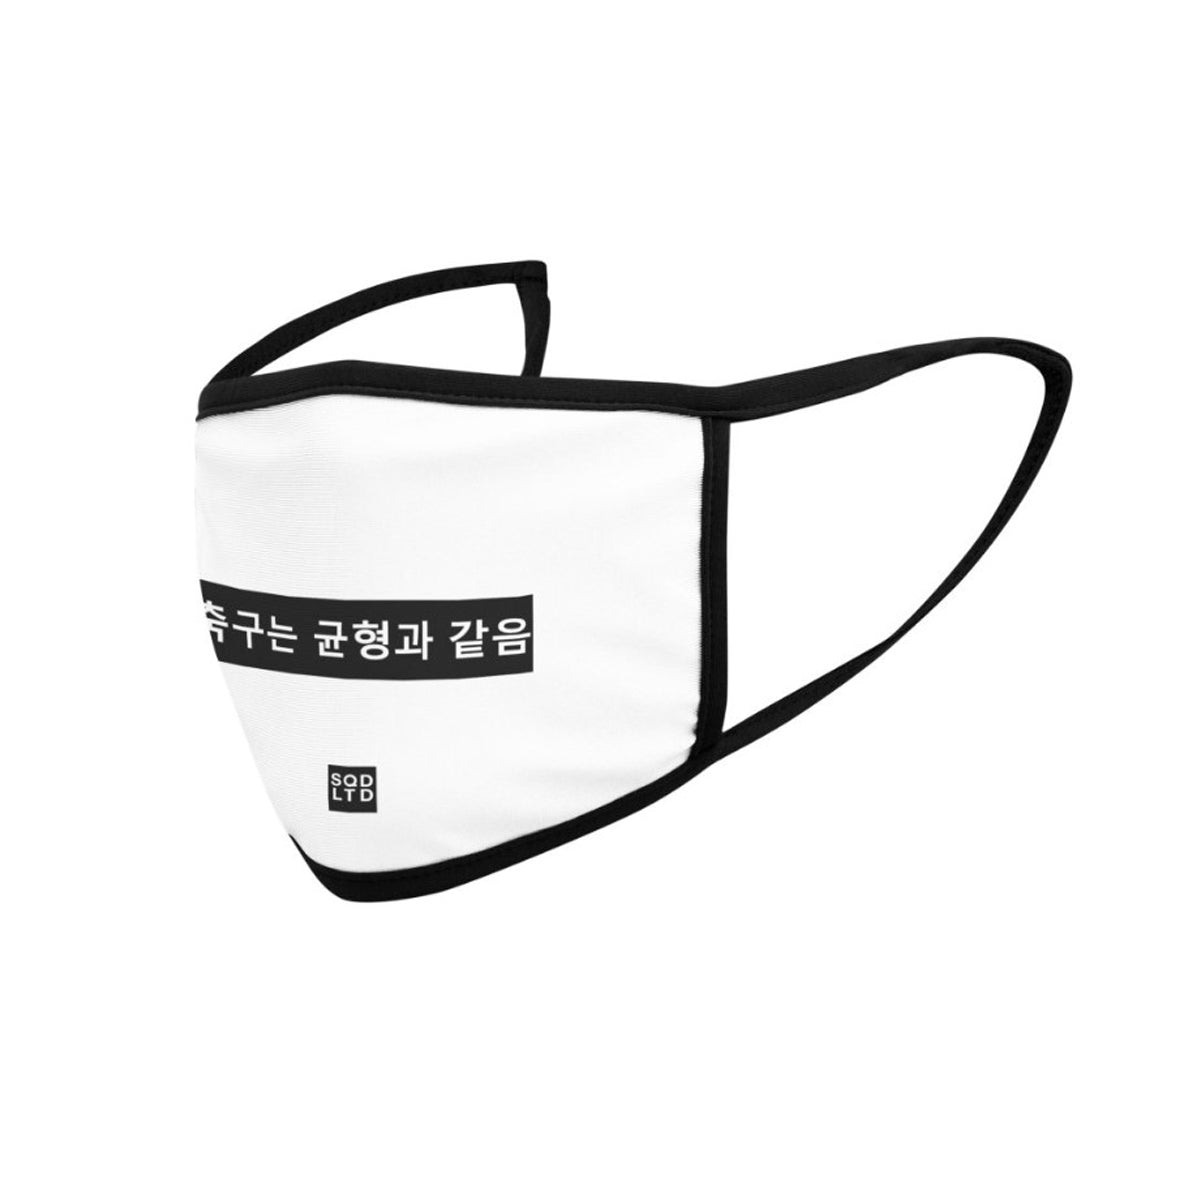 KOR Soccer Equals Balance Face Mask BL by Squared Limited